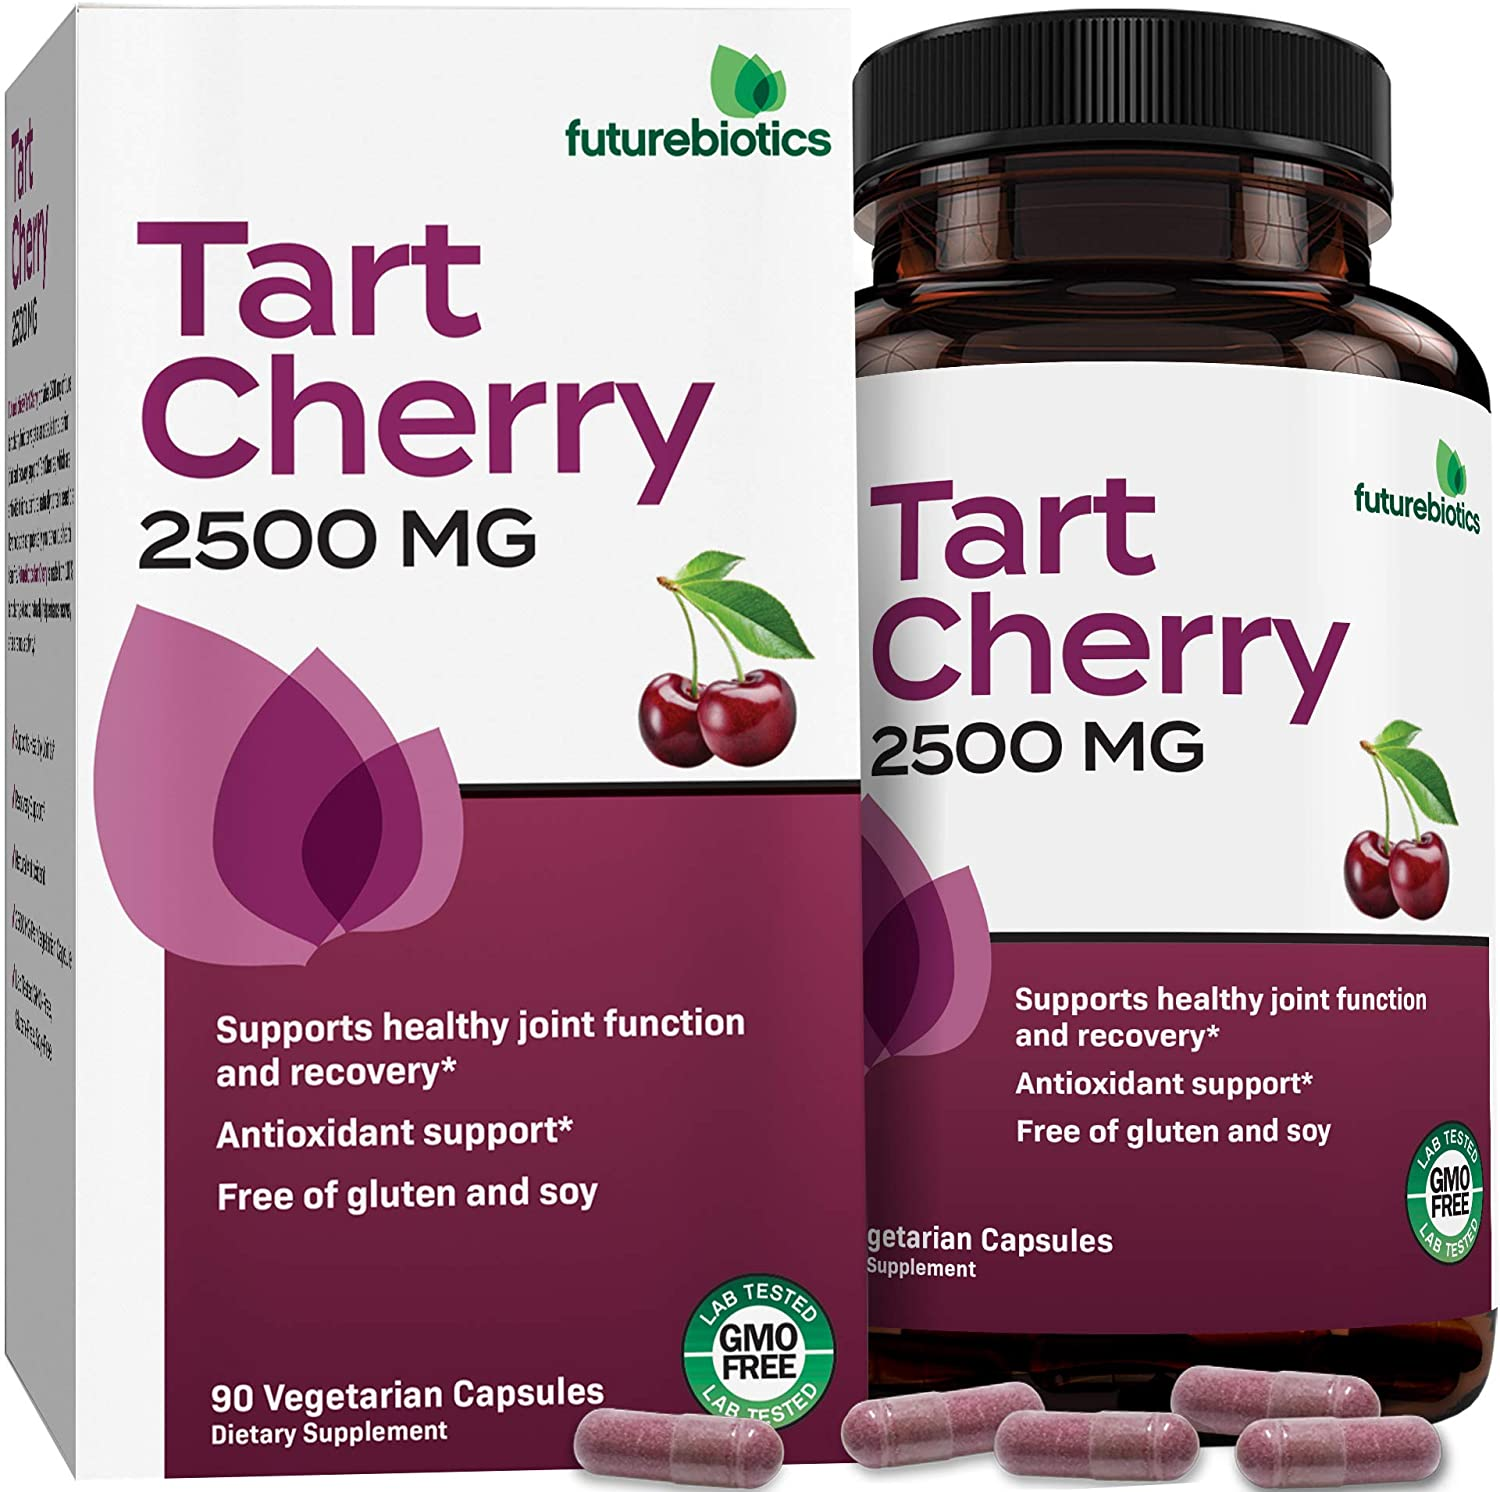 Futurebiotics Tart Cherry 2500 mg - Supports Joint Function & Recovery - Non GMO, 90 Vegetarian Capsules